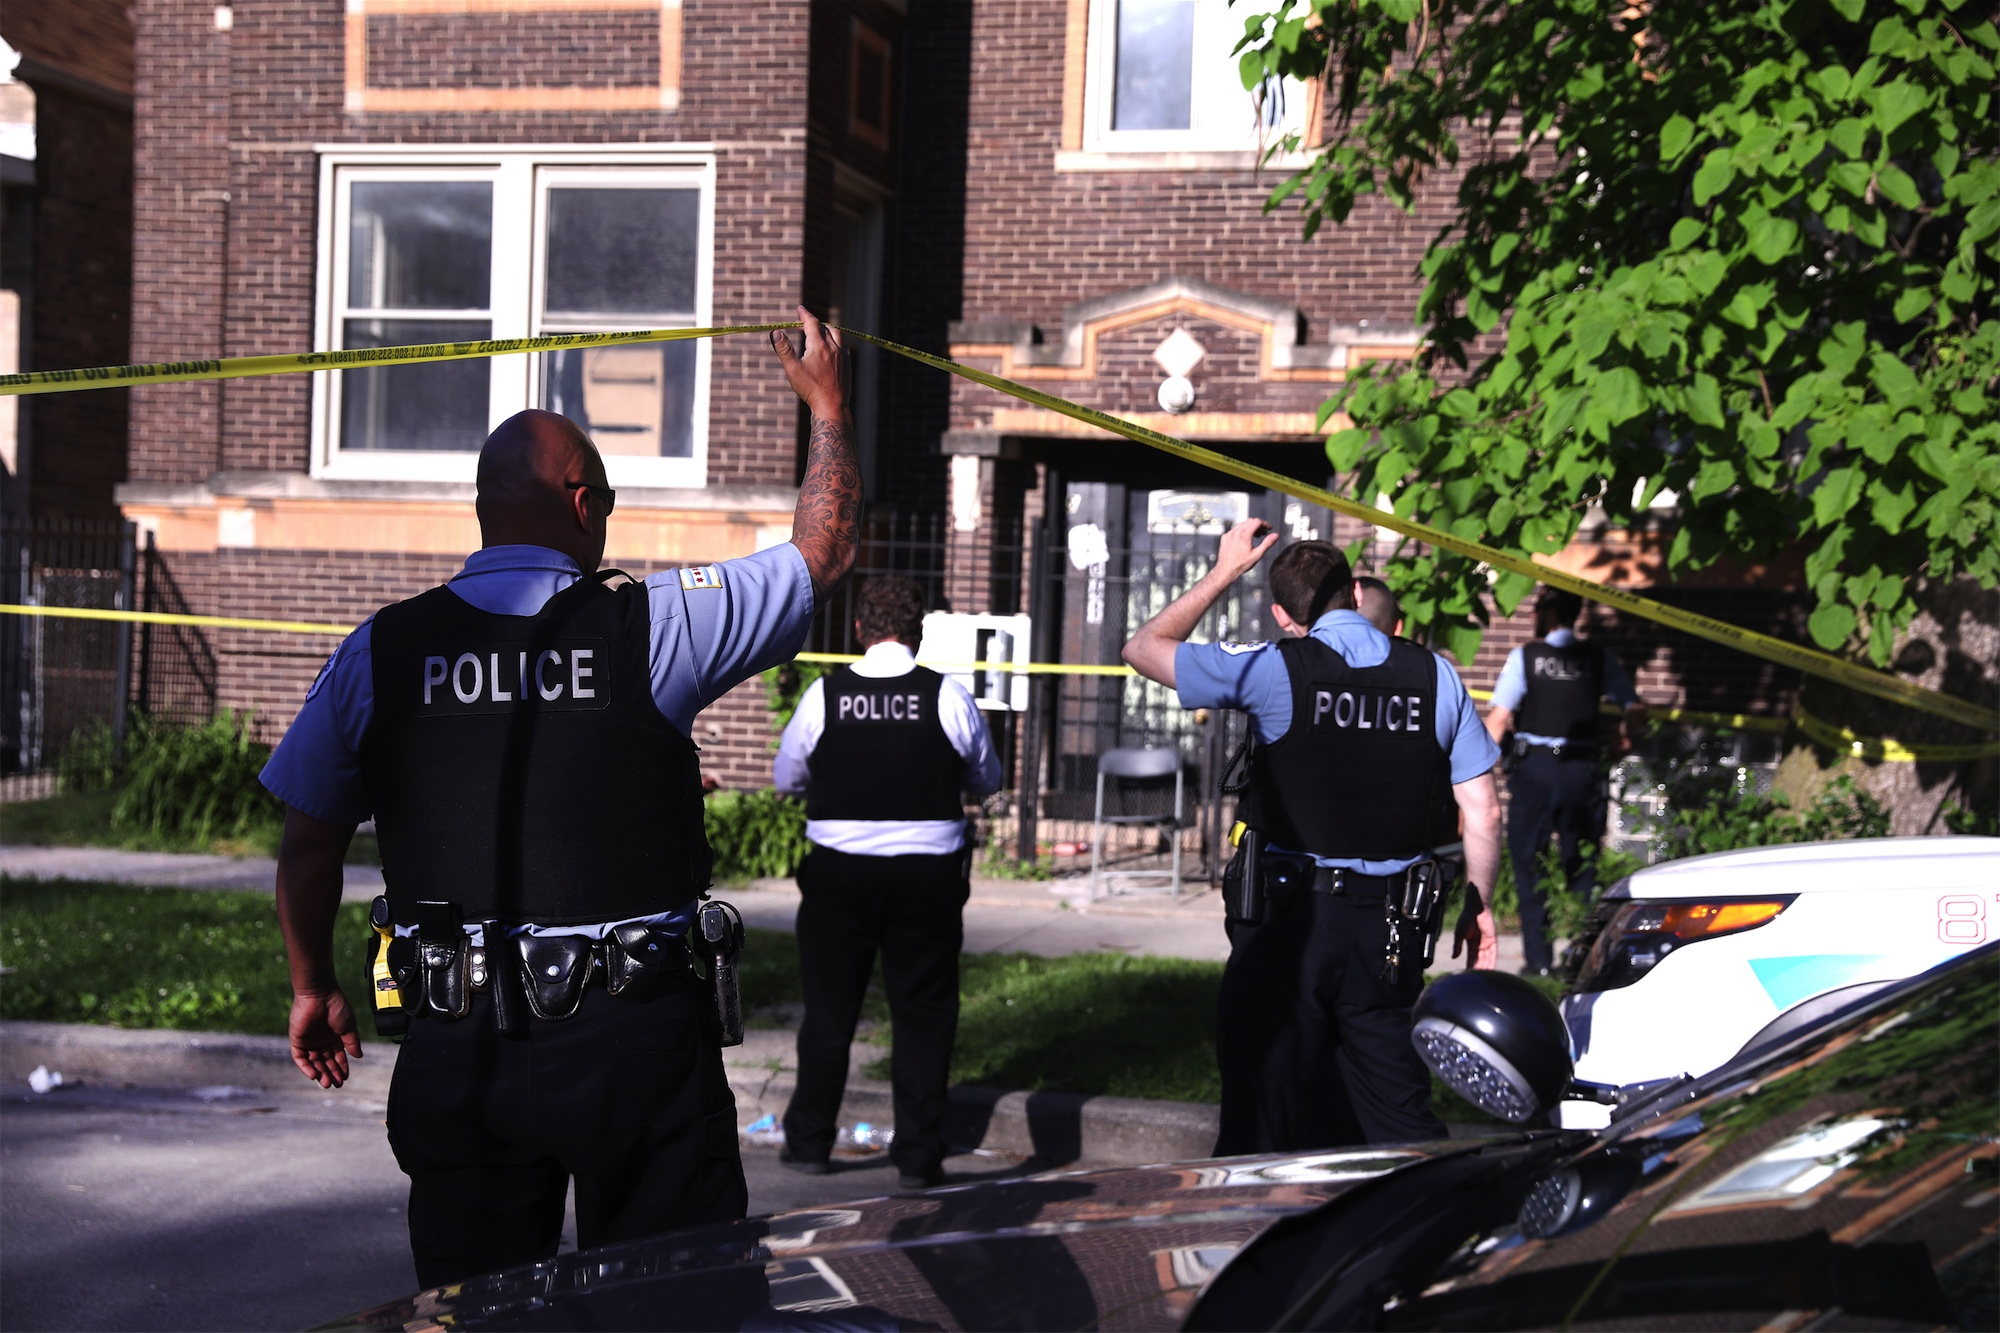 Chicago police at the scene of a shooting in the Englewood neighborhood. Getty Images